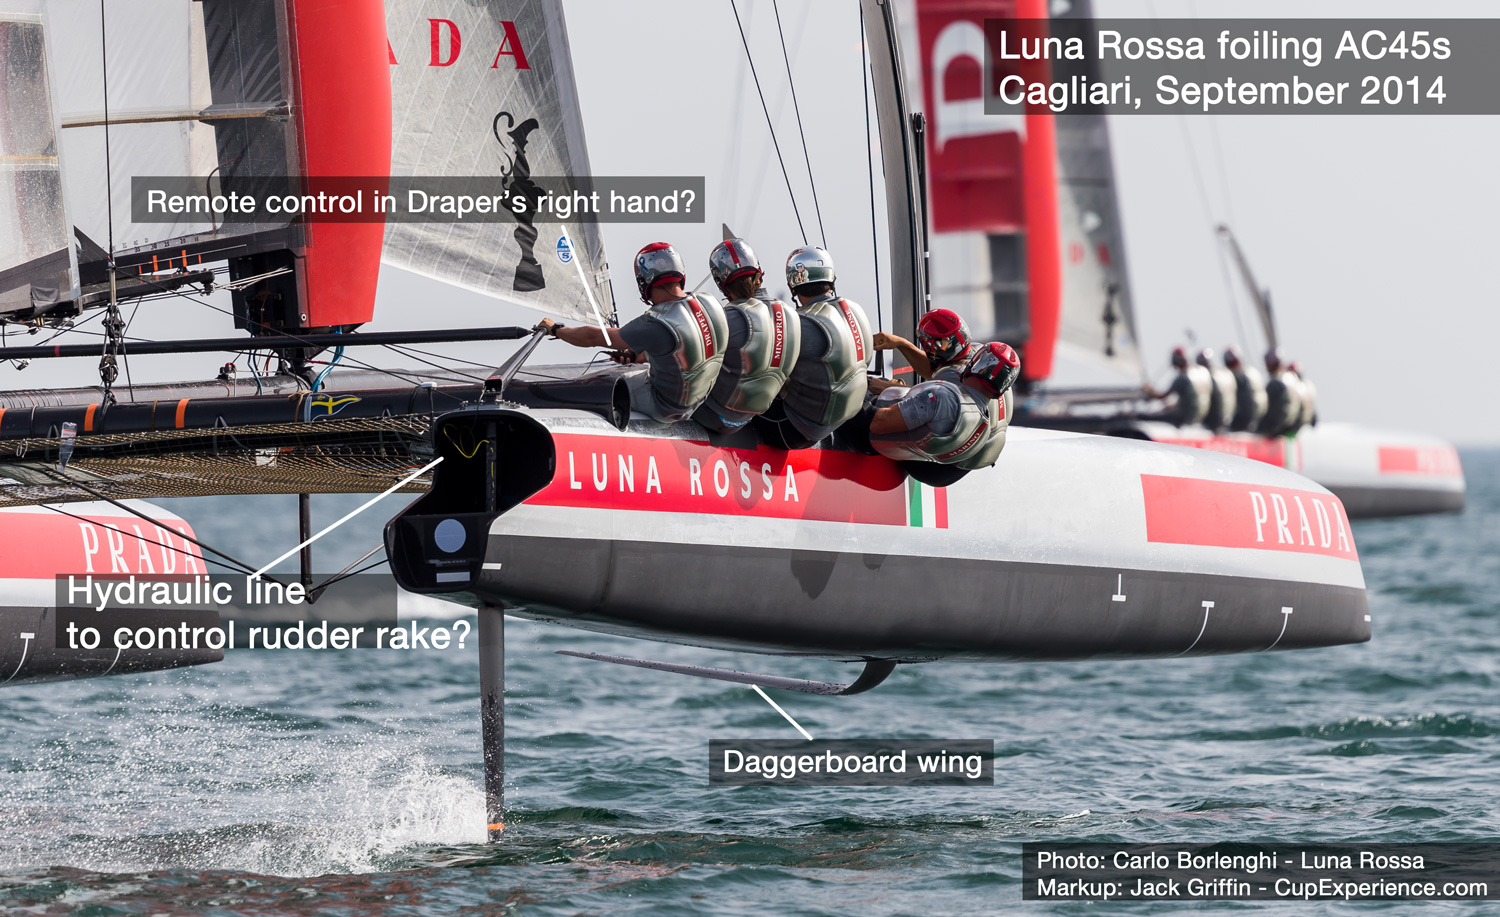 2017 America's Cup - Luna Rossa has modified two AC45s for testing